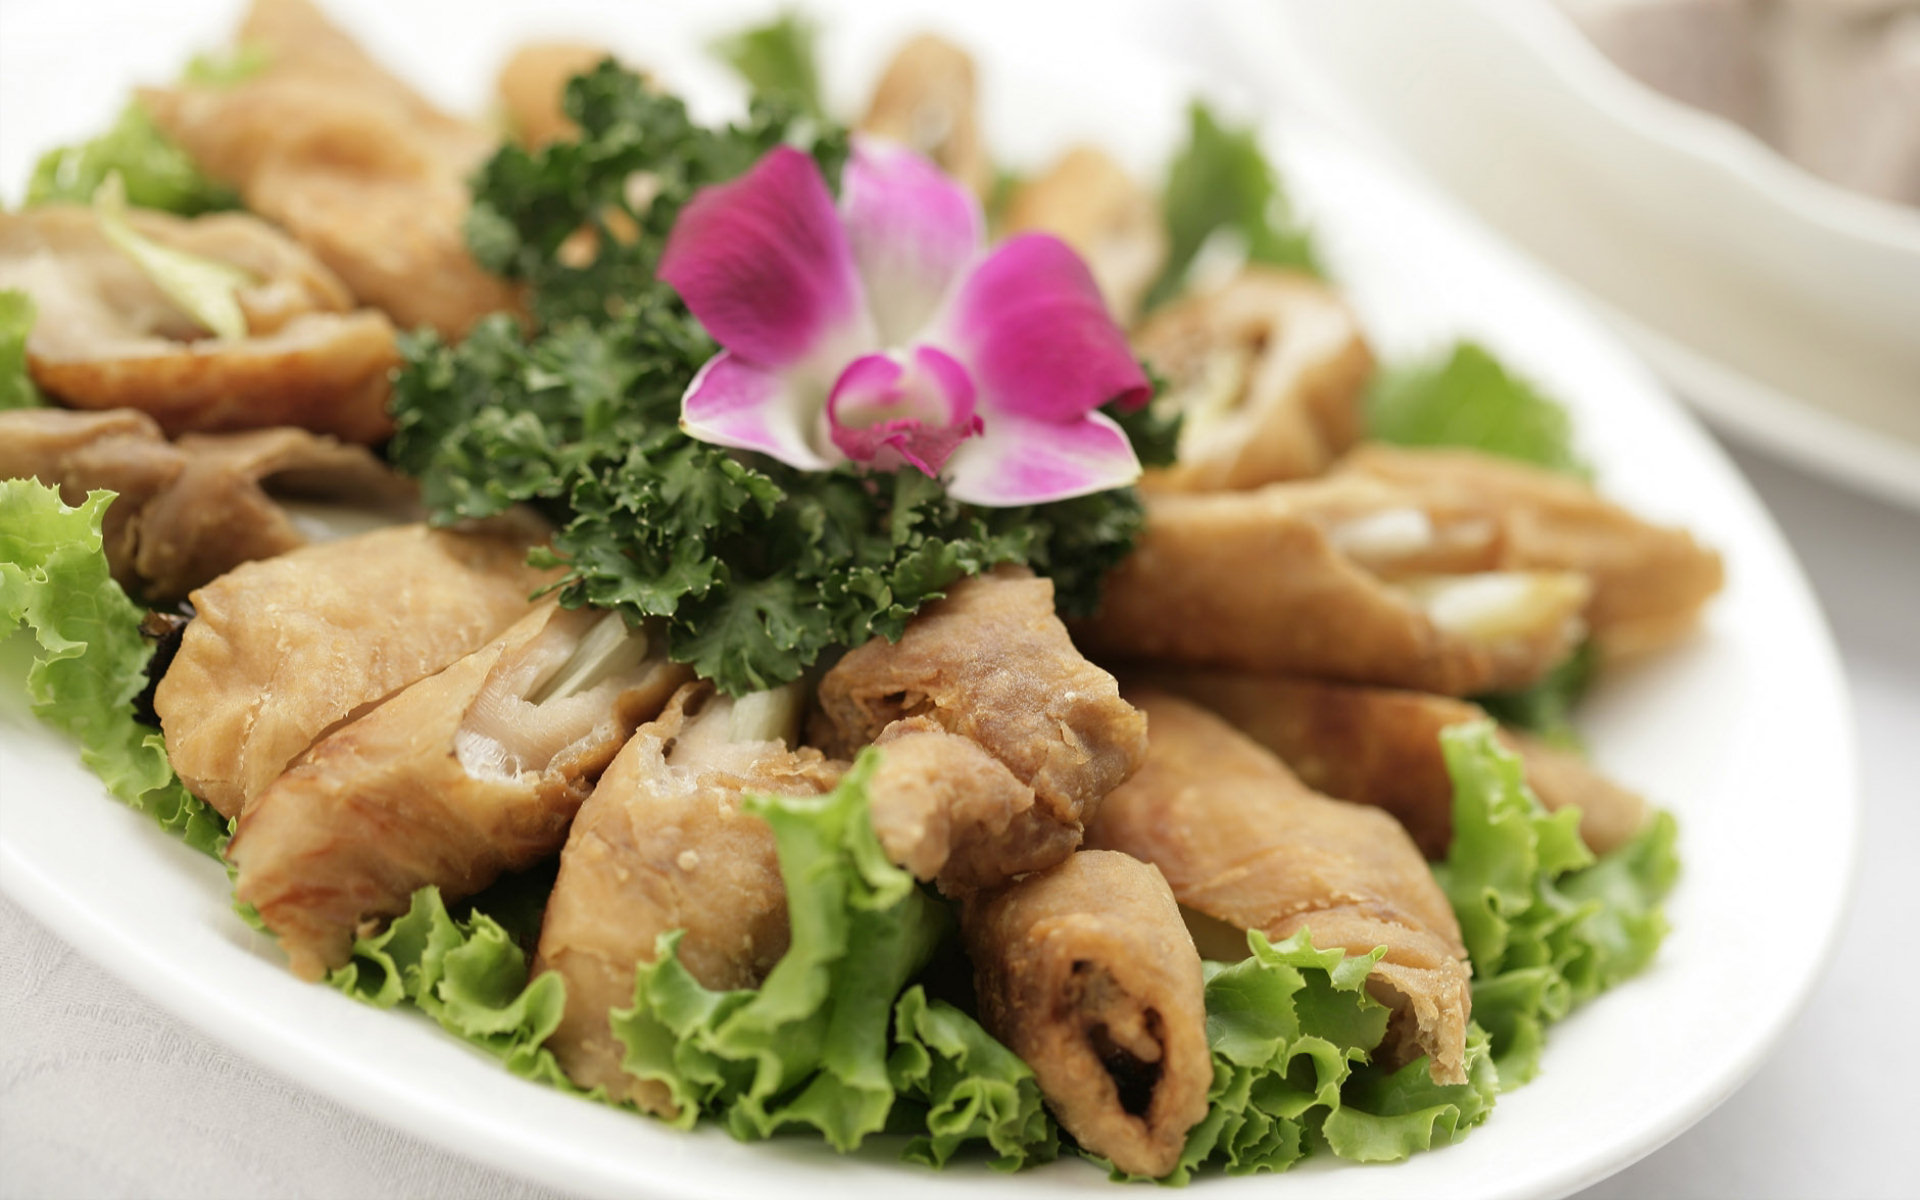 Chinese Food Hd Wallpaper Background Image 1920x1200